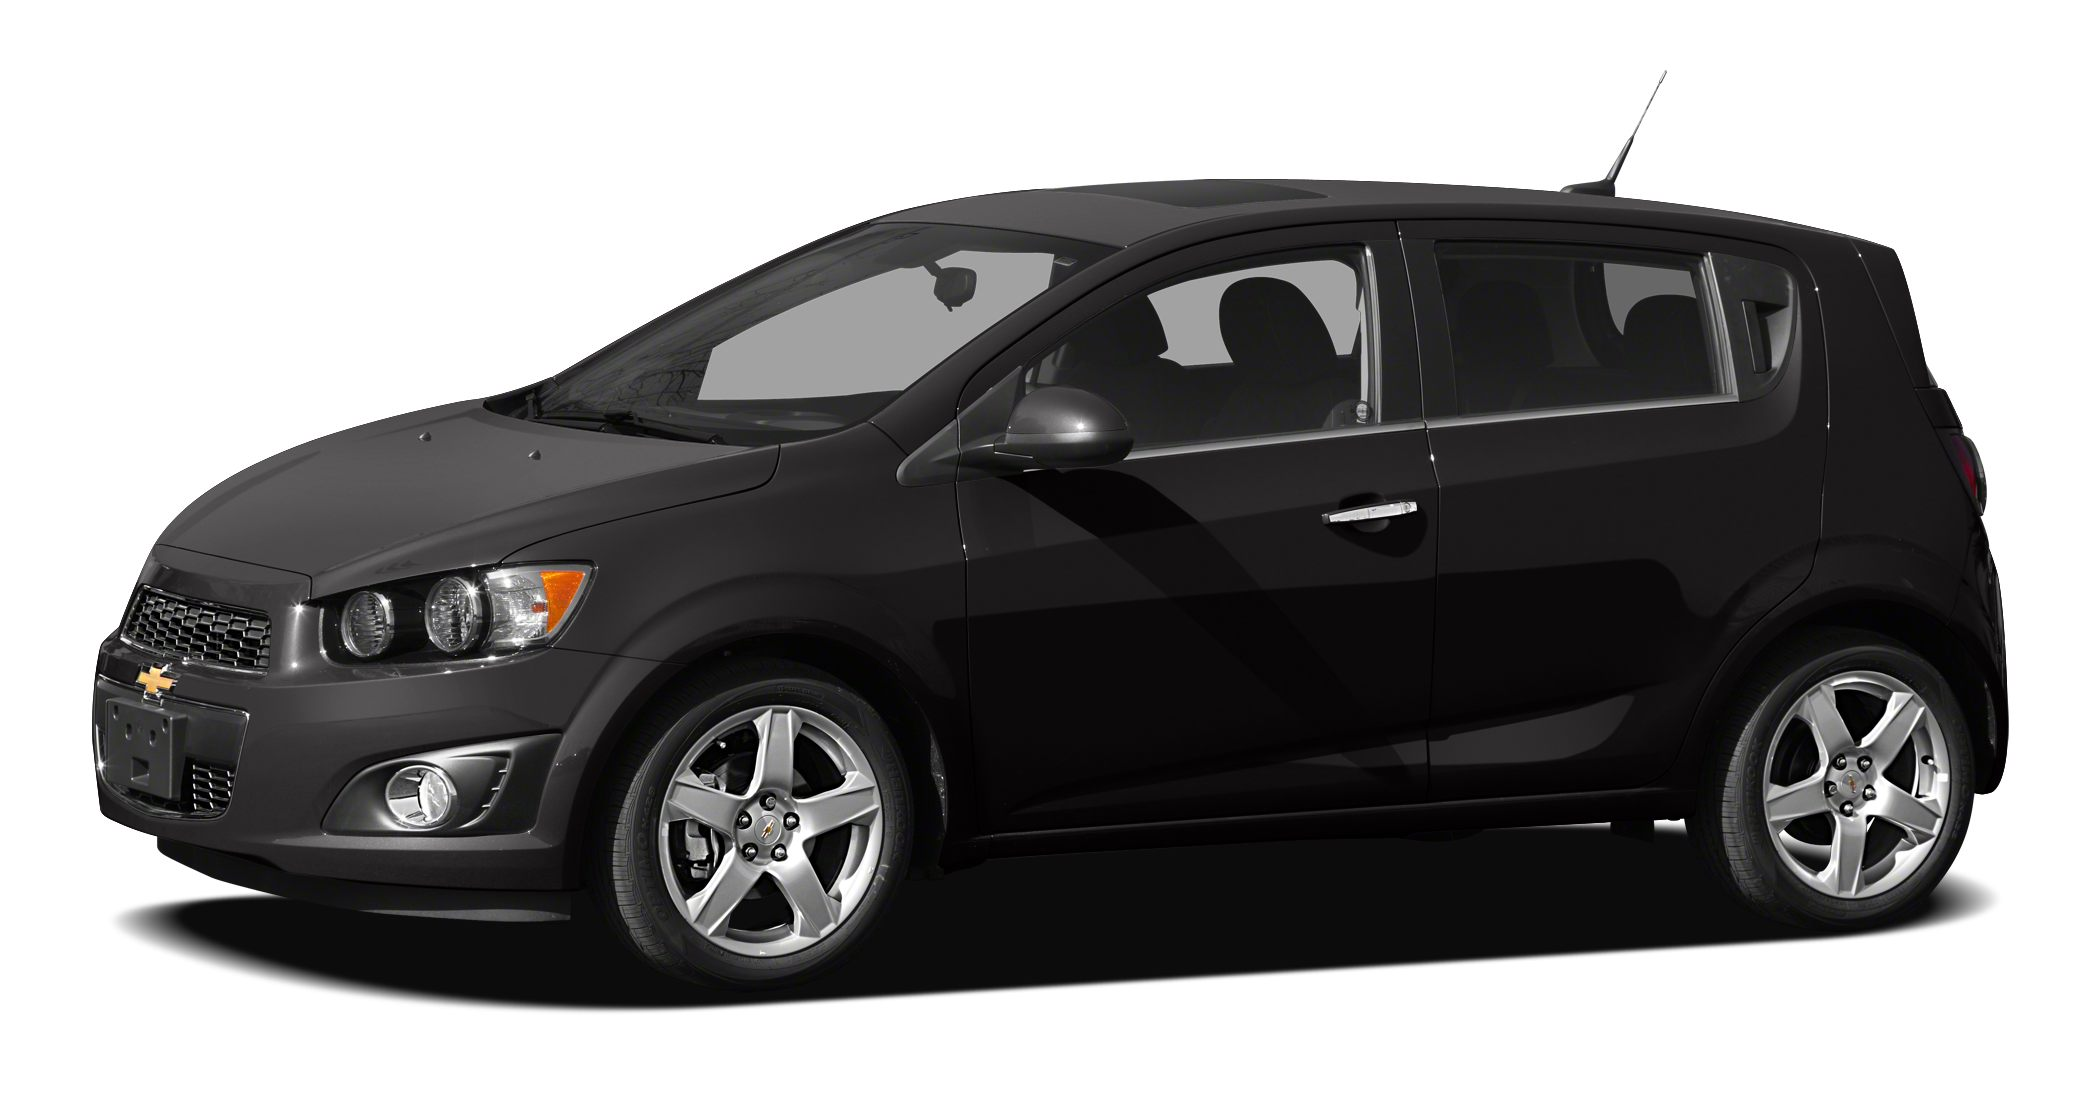 2012 Chevrolet Sonic LS Come experience a whole new way of buying pre-owned At Paul Masse we str